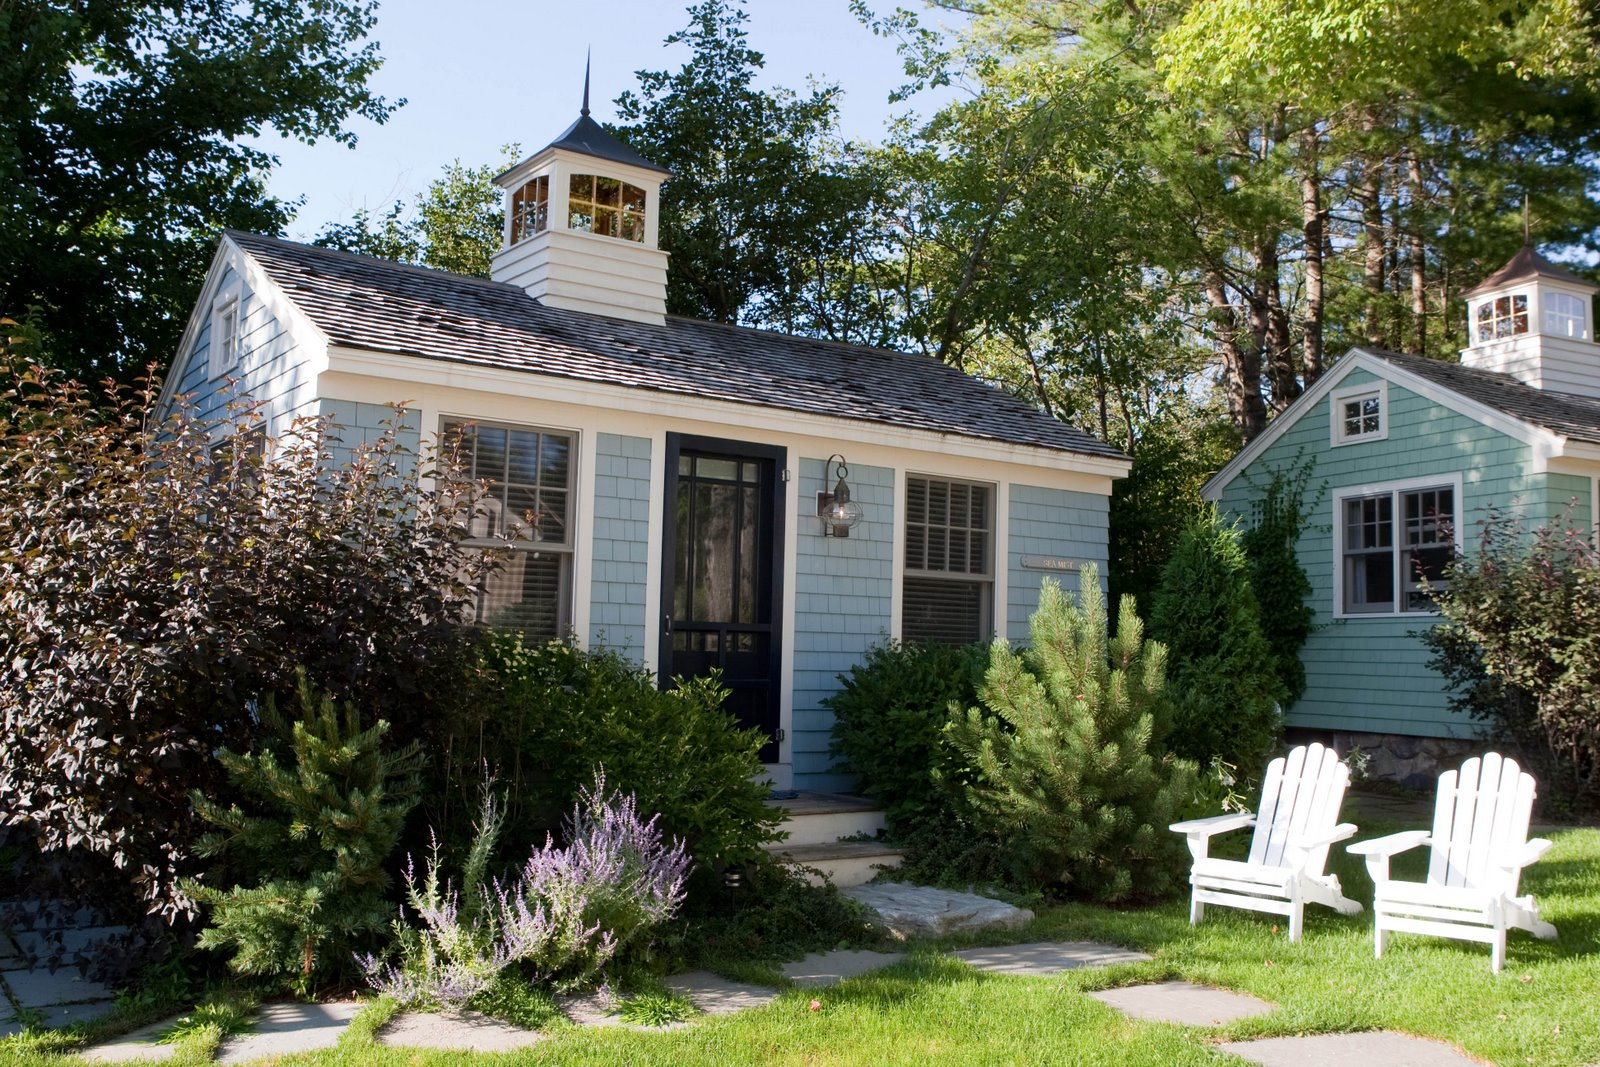 cabot cove cottages kennebunkport maine content in a cottage. Black Bedroom Furniture Sets. Home Design Ideas